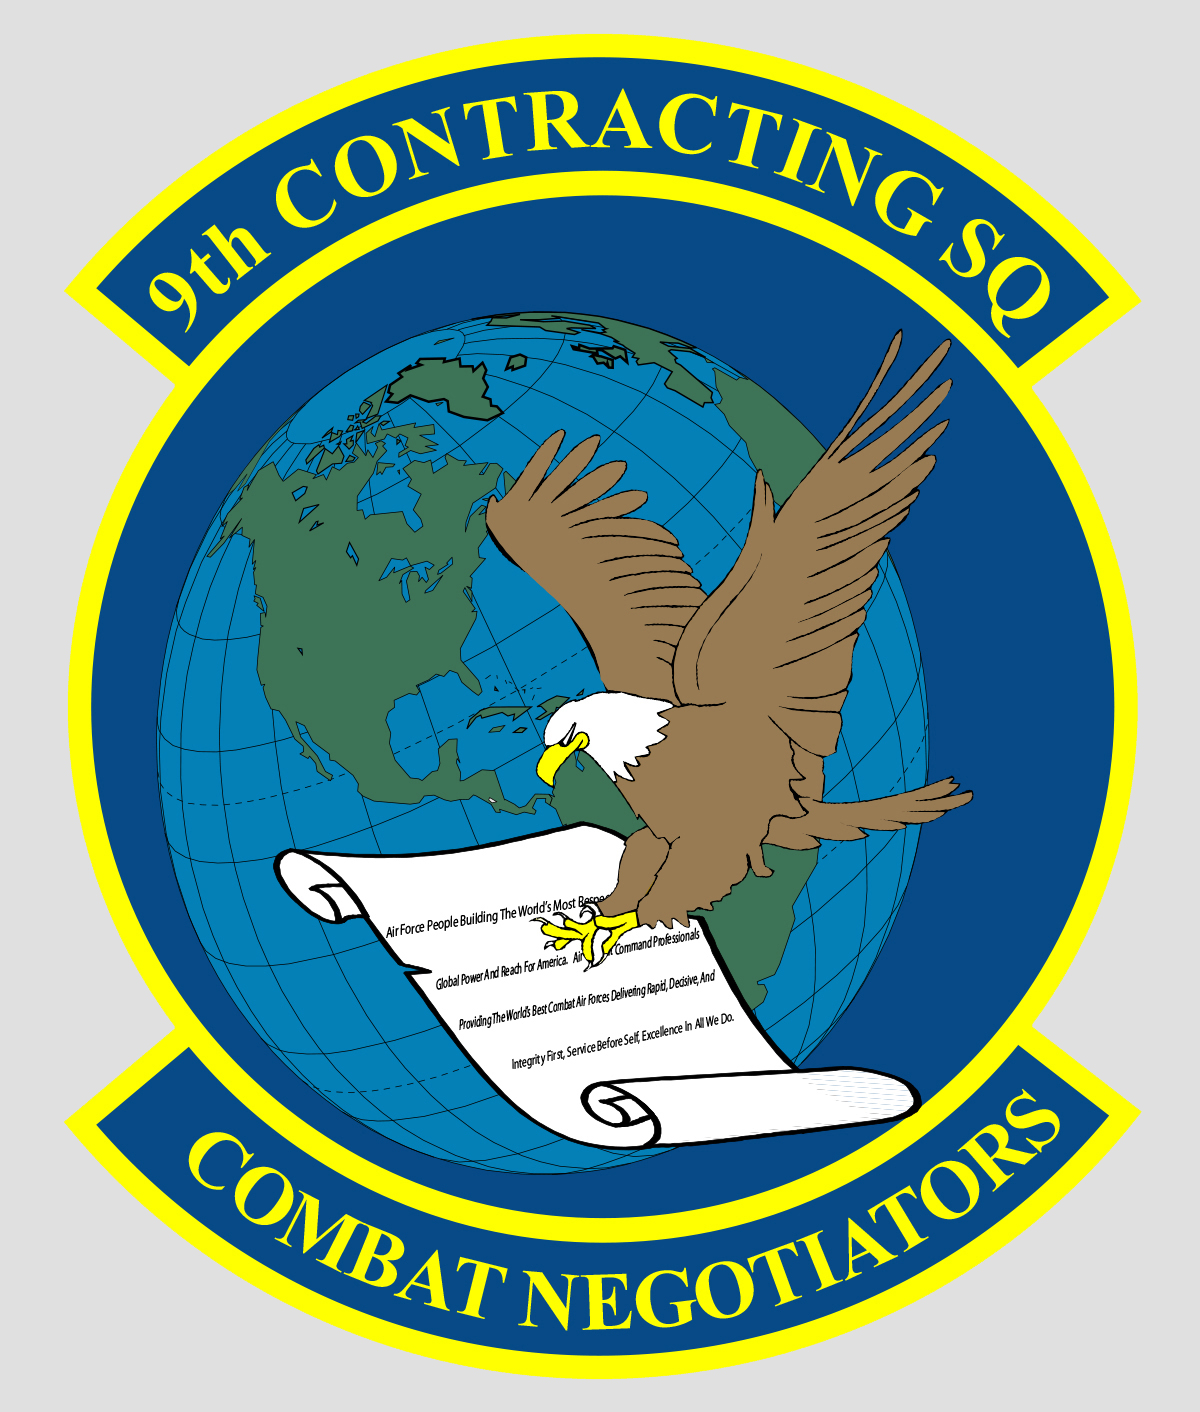 9th Contracting Squadron